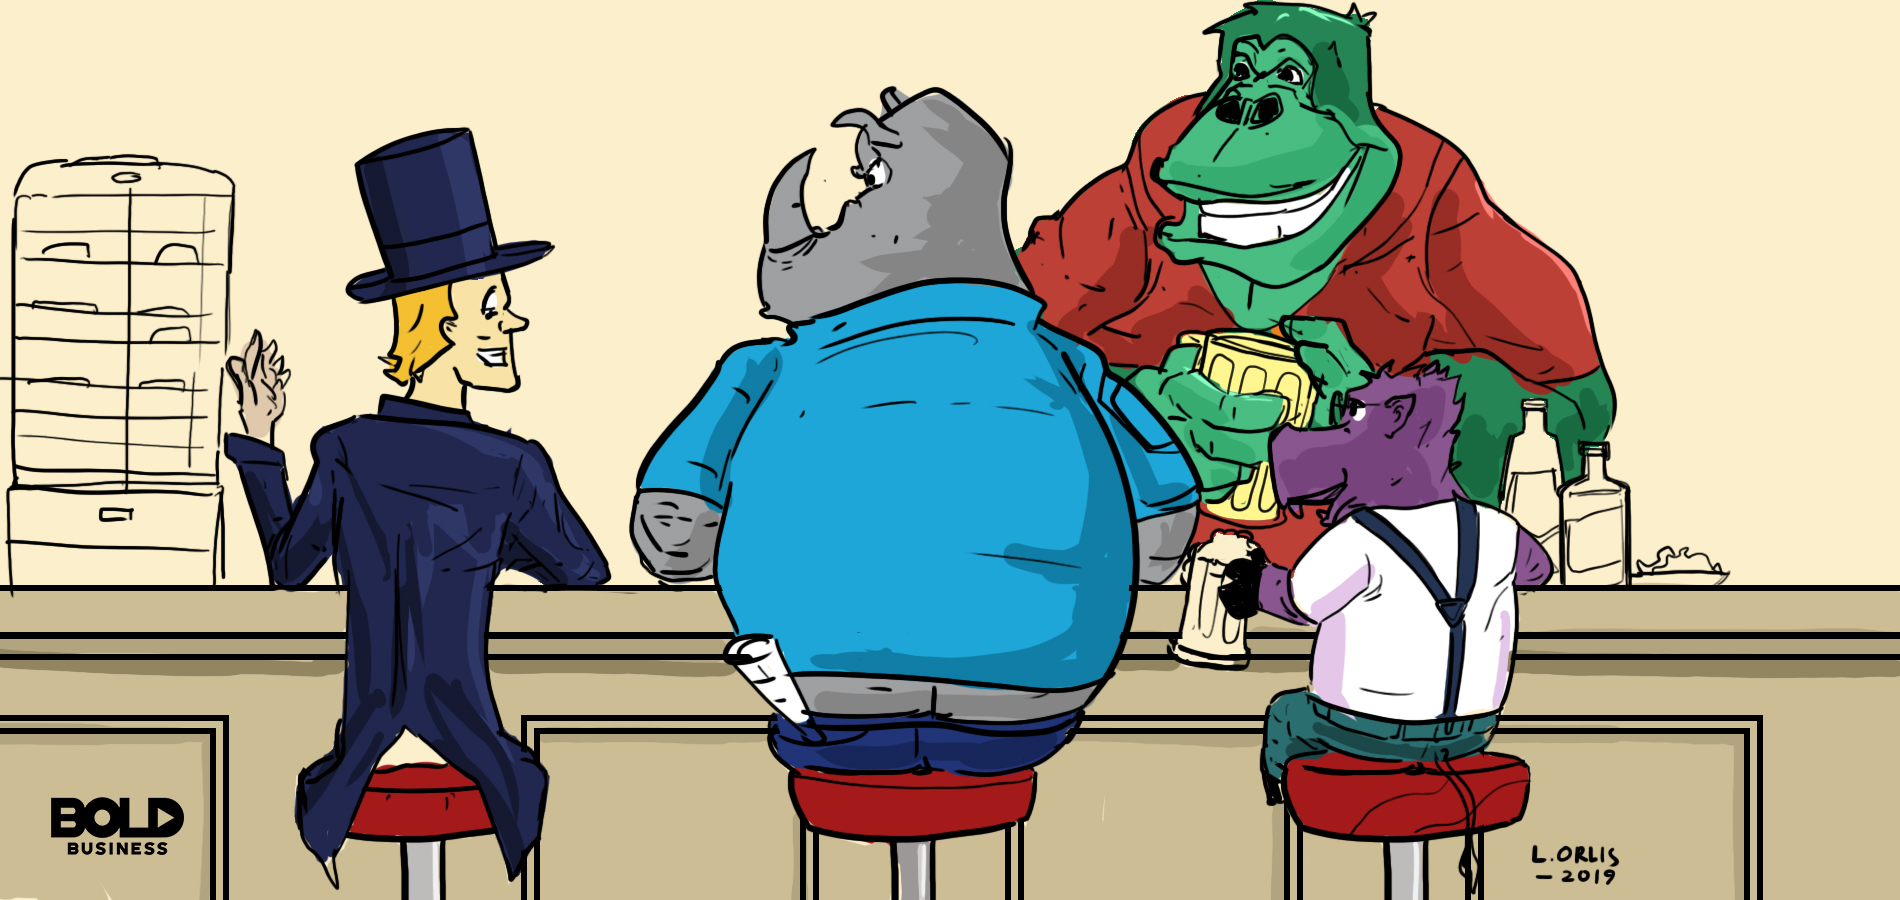 a photo of animals and a human drinking beer at a bar counter with a gorilla serving as the bartender, symbolizing the current talks of equality for animals and people